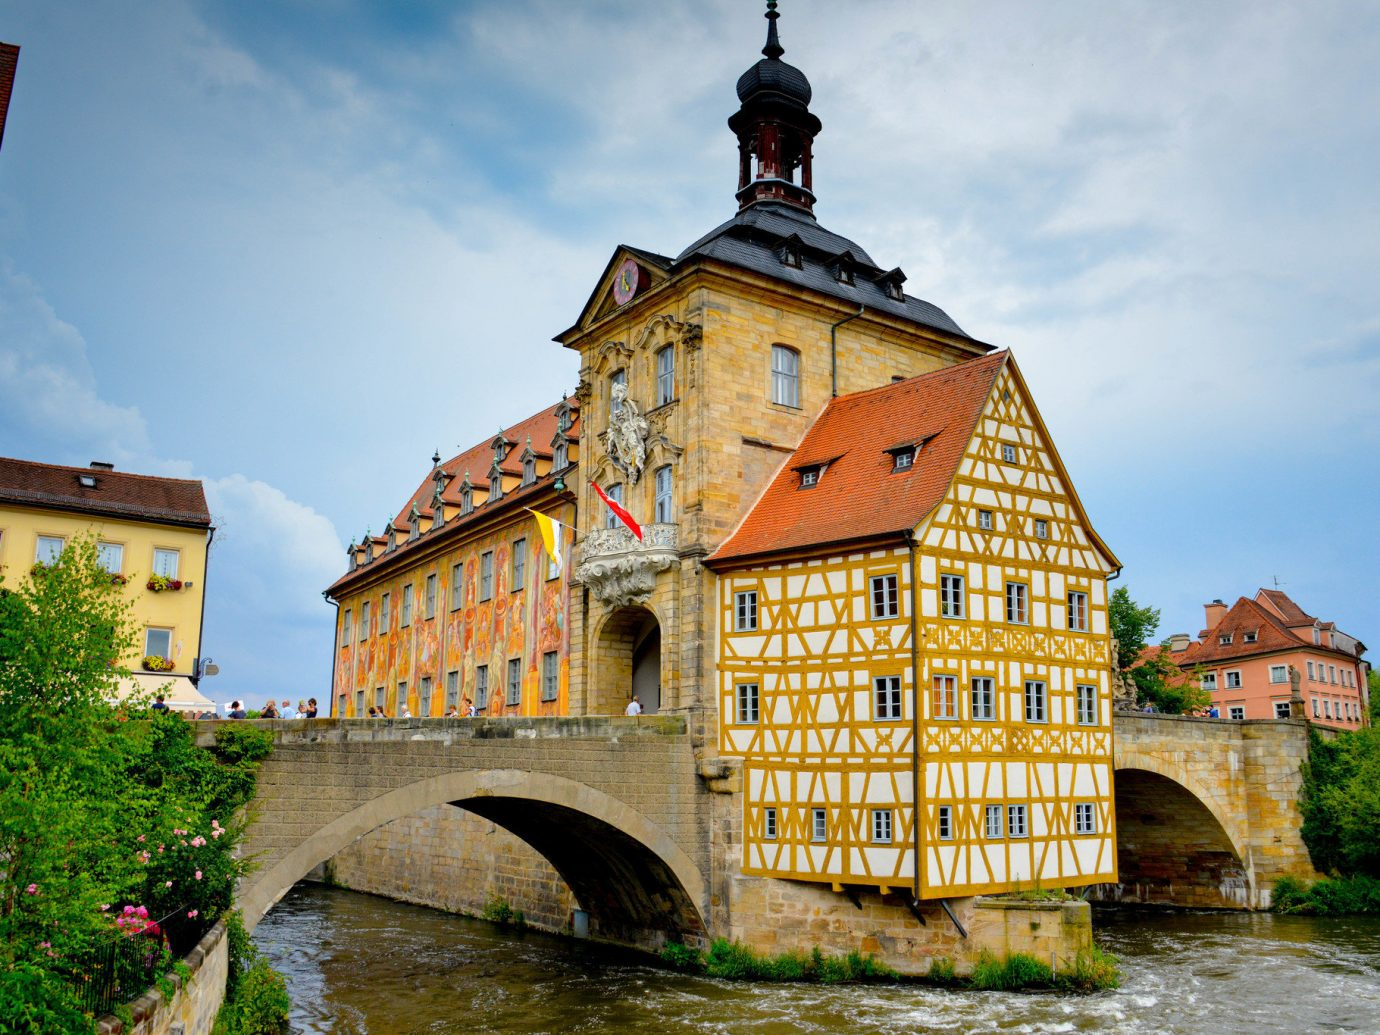 Berlin europe Germany Trip Ideas sky building outdoor Town landmark house tourism vacation waterway River tower château rural area old Village yellow Church middle ages travel monastery place of worship stone arch